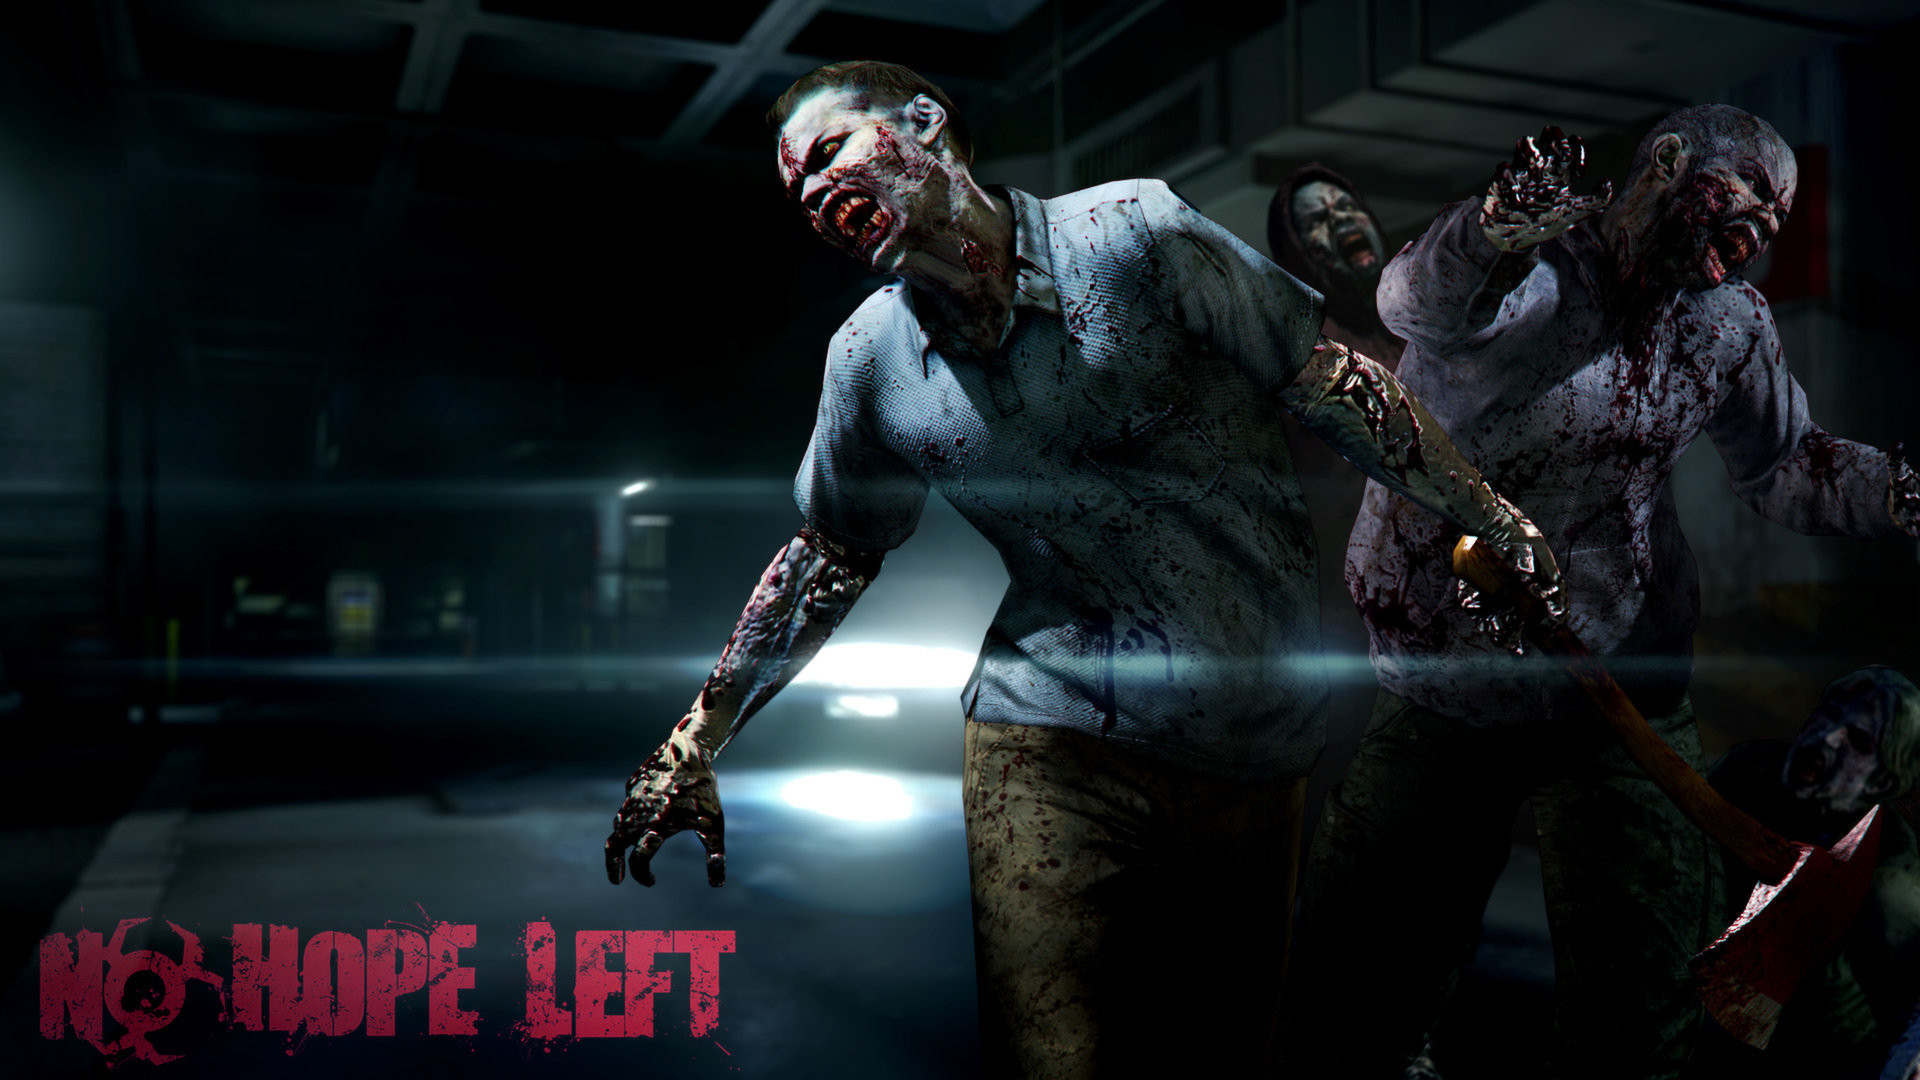 1920x1080 Resident Evil Zombie wallpaper background